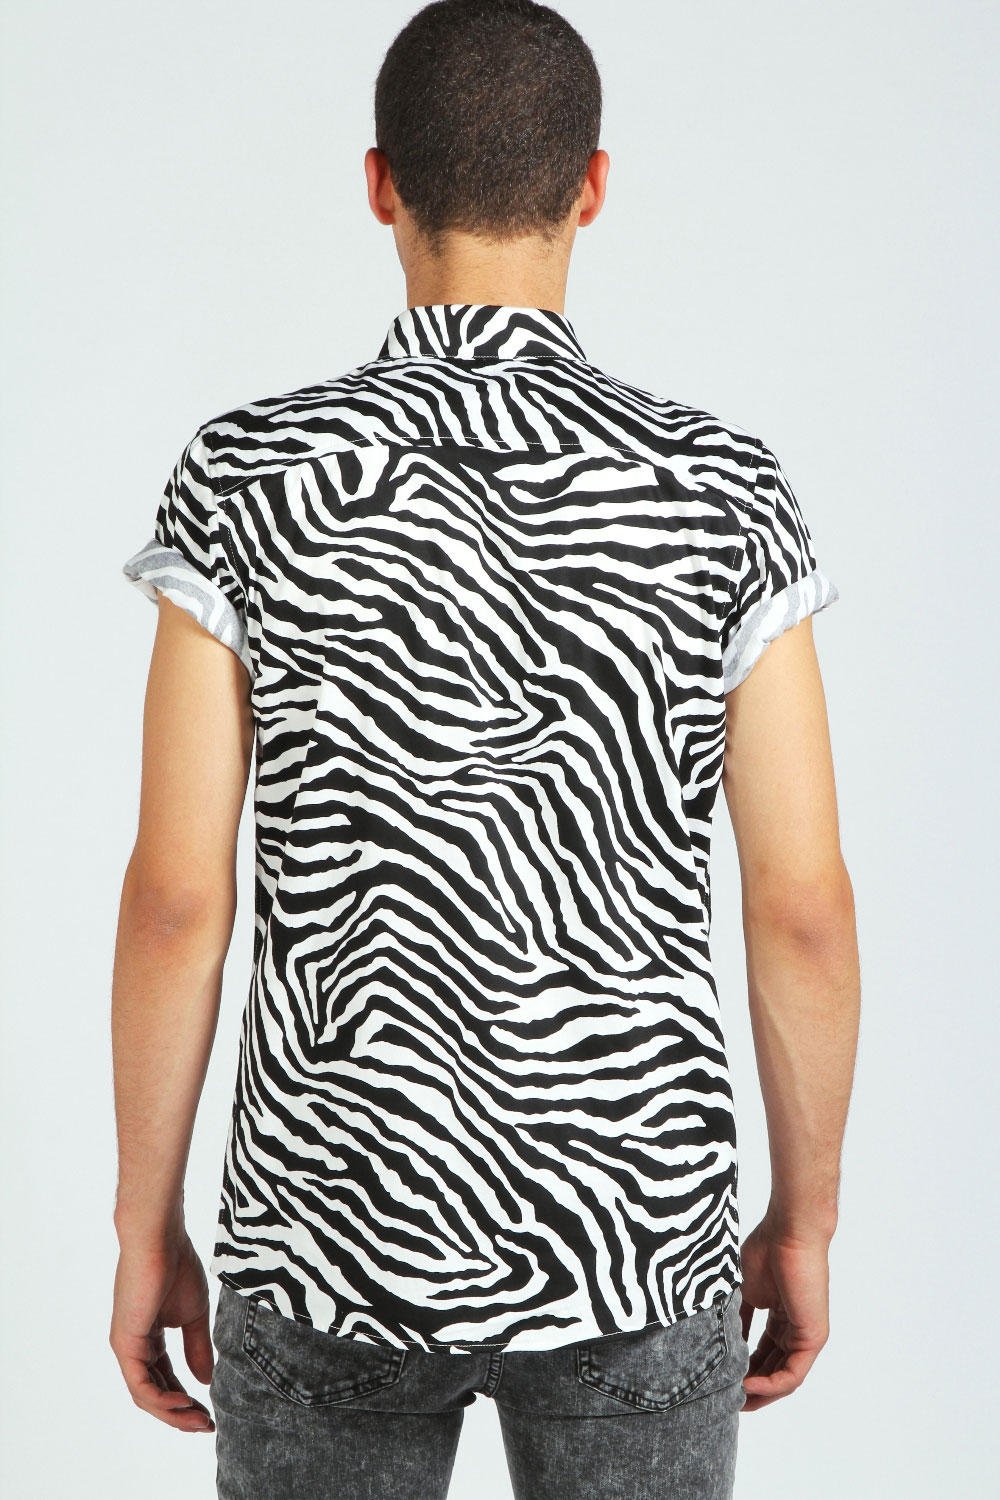 Boohoo Mens Short Sleeve Zebra Print Cotton Top Shirt In White | eBay